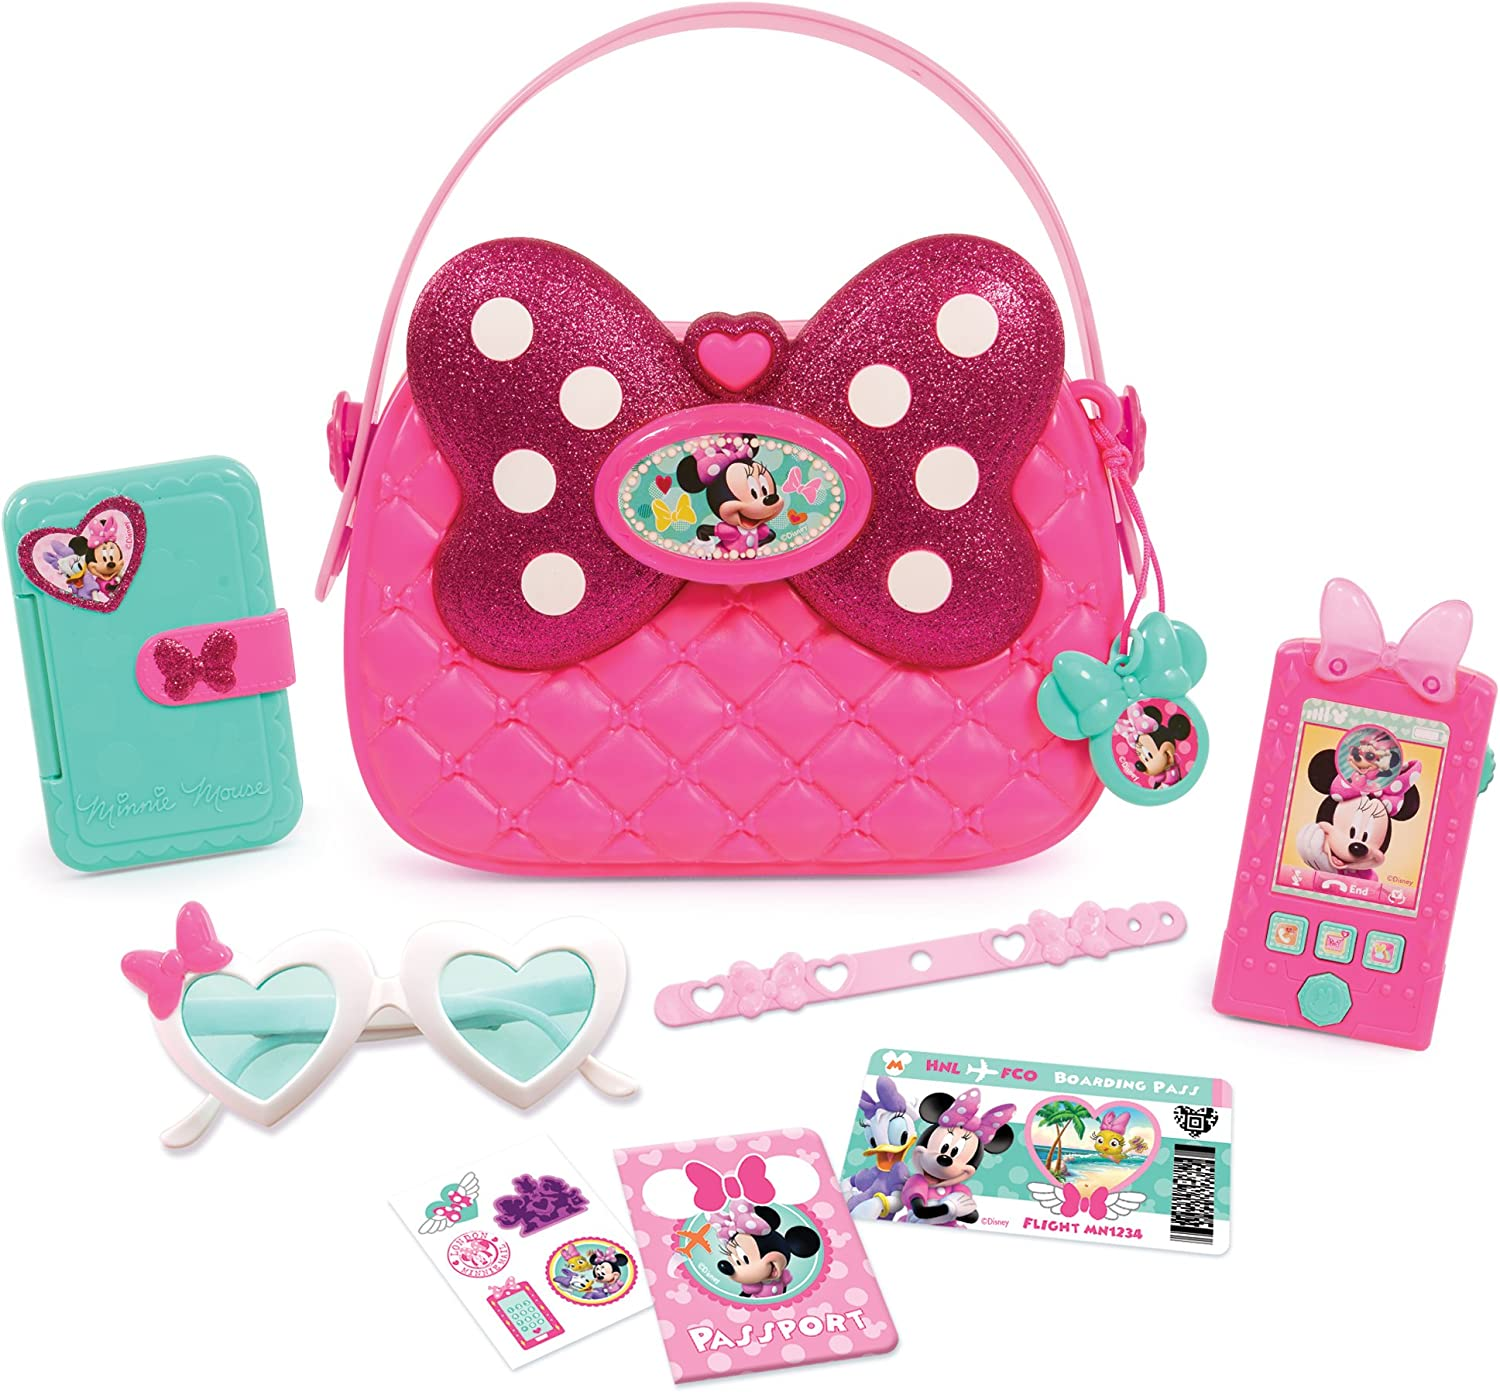 Minnie Mouse Happy Helpers Bag Set With Lights And Sounds